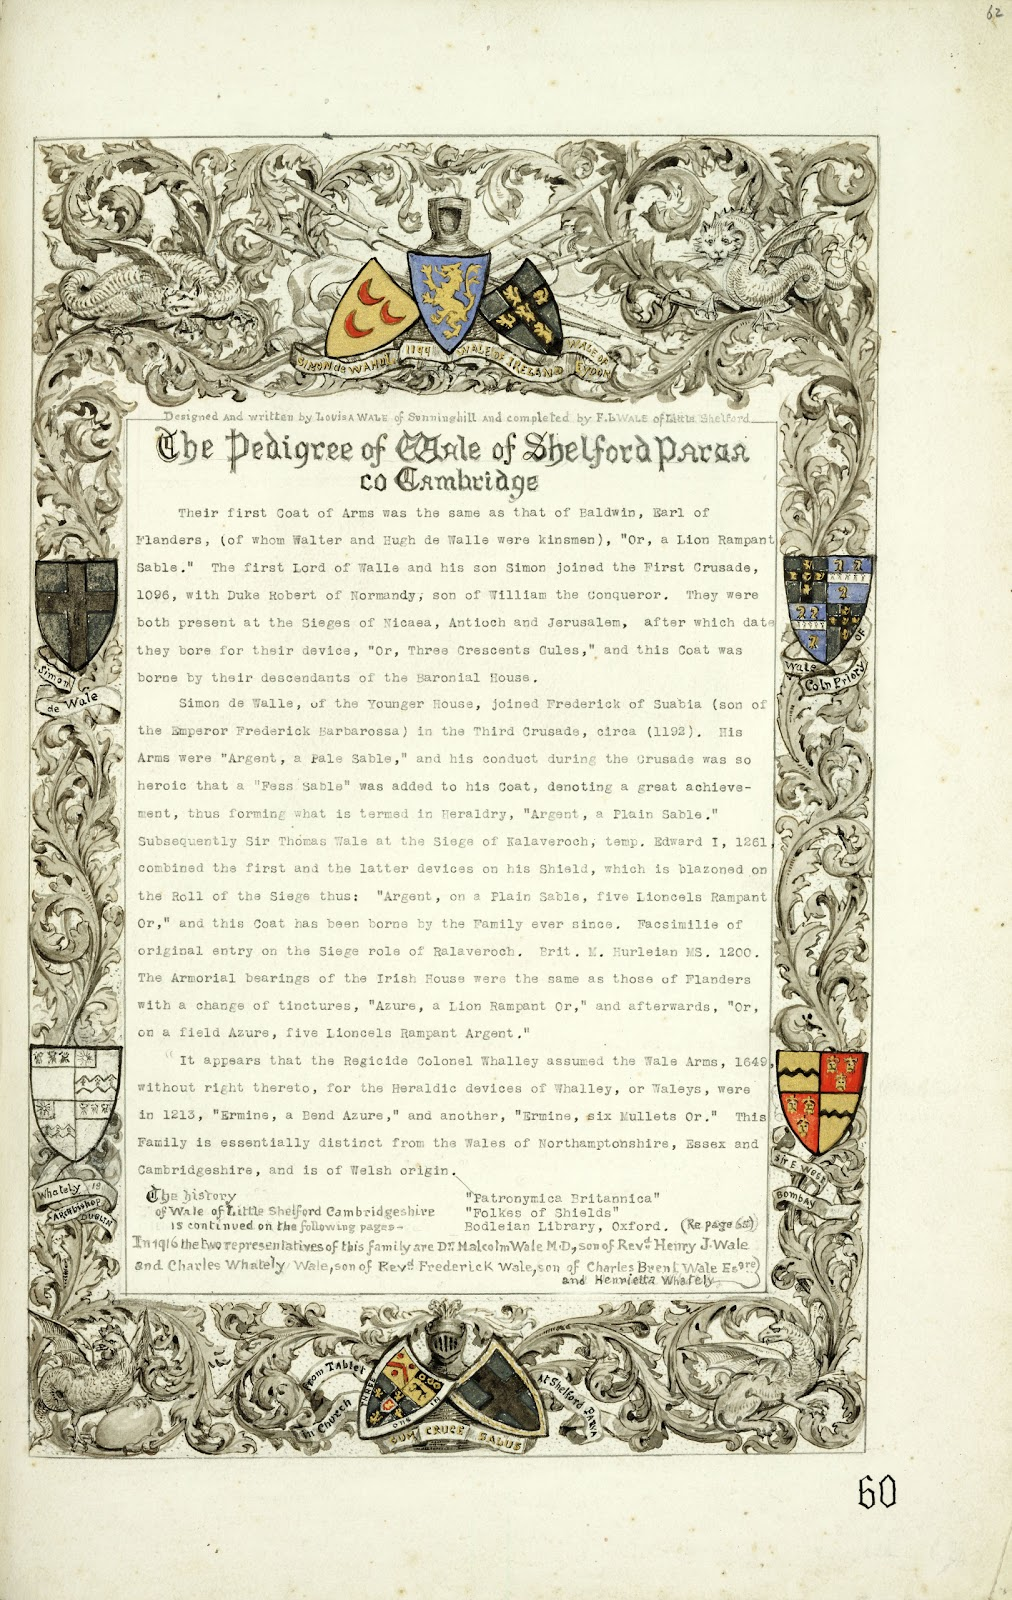 A Record of Shelford Parva by Fanny Wale P60 fo. 62, page 60: The pedigree of Wale of Shelford Parva, Cambridge. The fo. is decorated with coats of arms of different families/Sir E. West, Simon de Wahul, Wale of Ireland, Wale of Eydon, Wale of Coln Priory, Whately Archbishop of Dublin, Ireland. [fo.52, apparently a late addition as on thinner photographic paper and exceptionally with ms notes on the back by FL Wale and others]